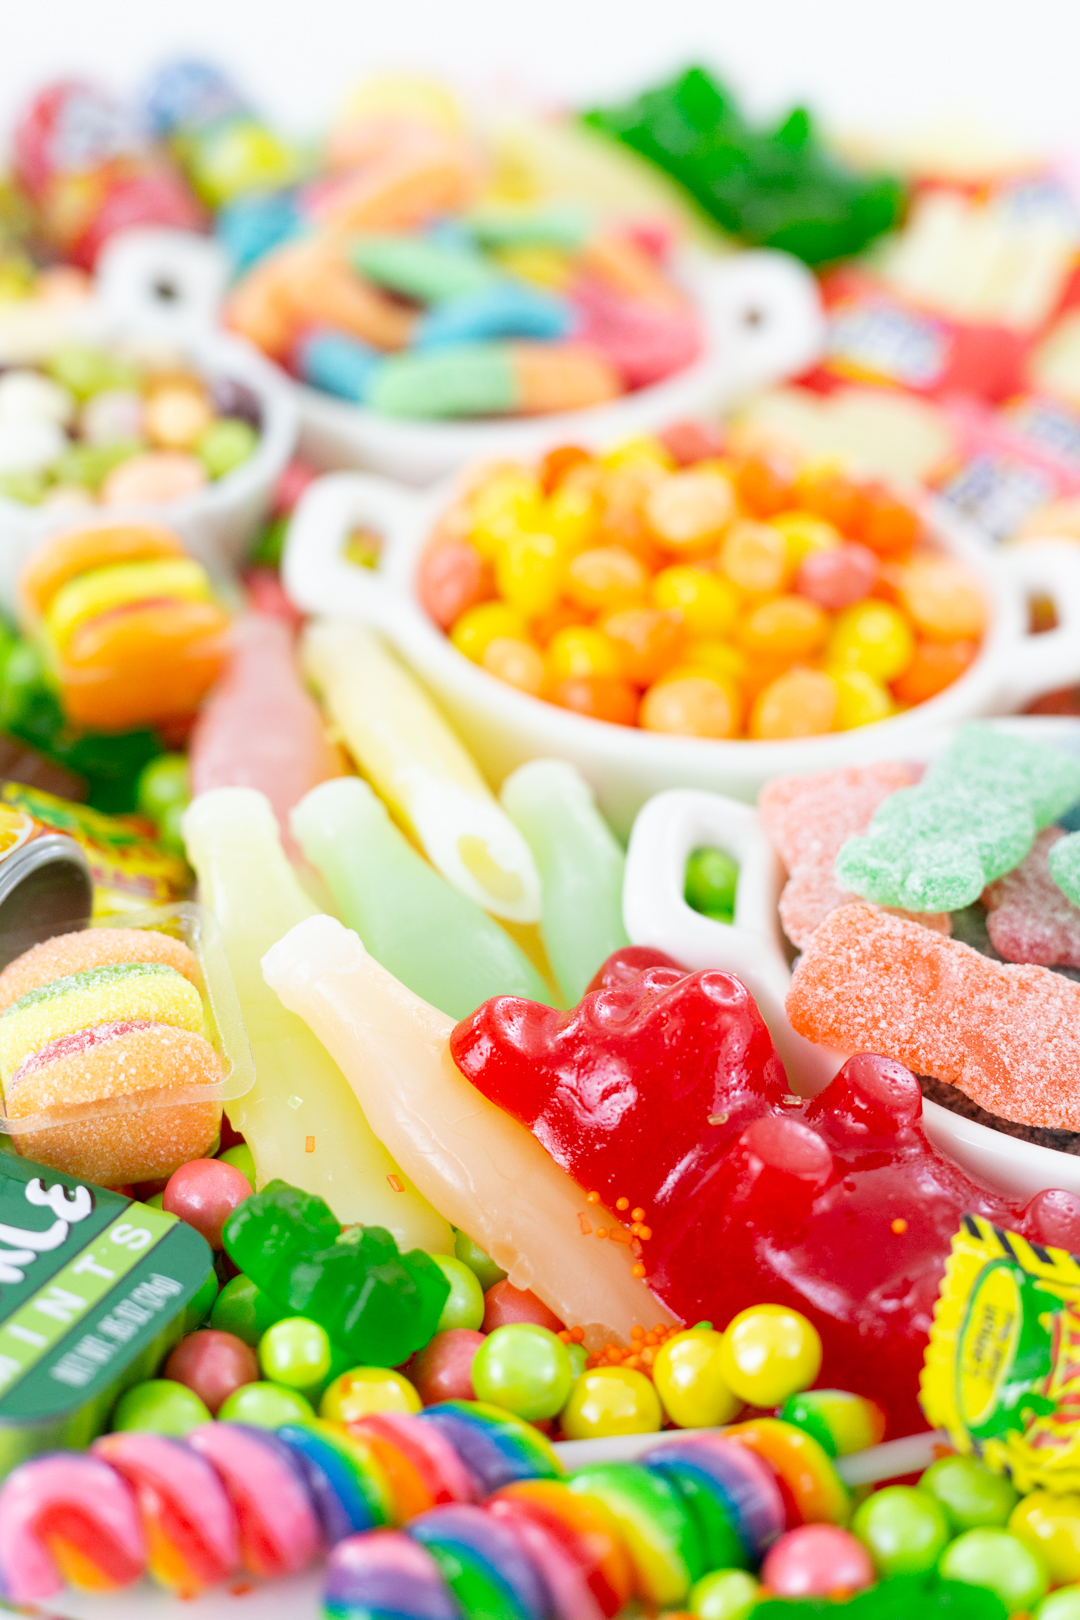 Funny tray of candies with giant gummy bear, colorful lollipops, soda candies.